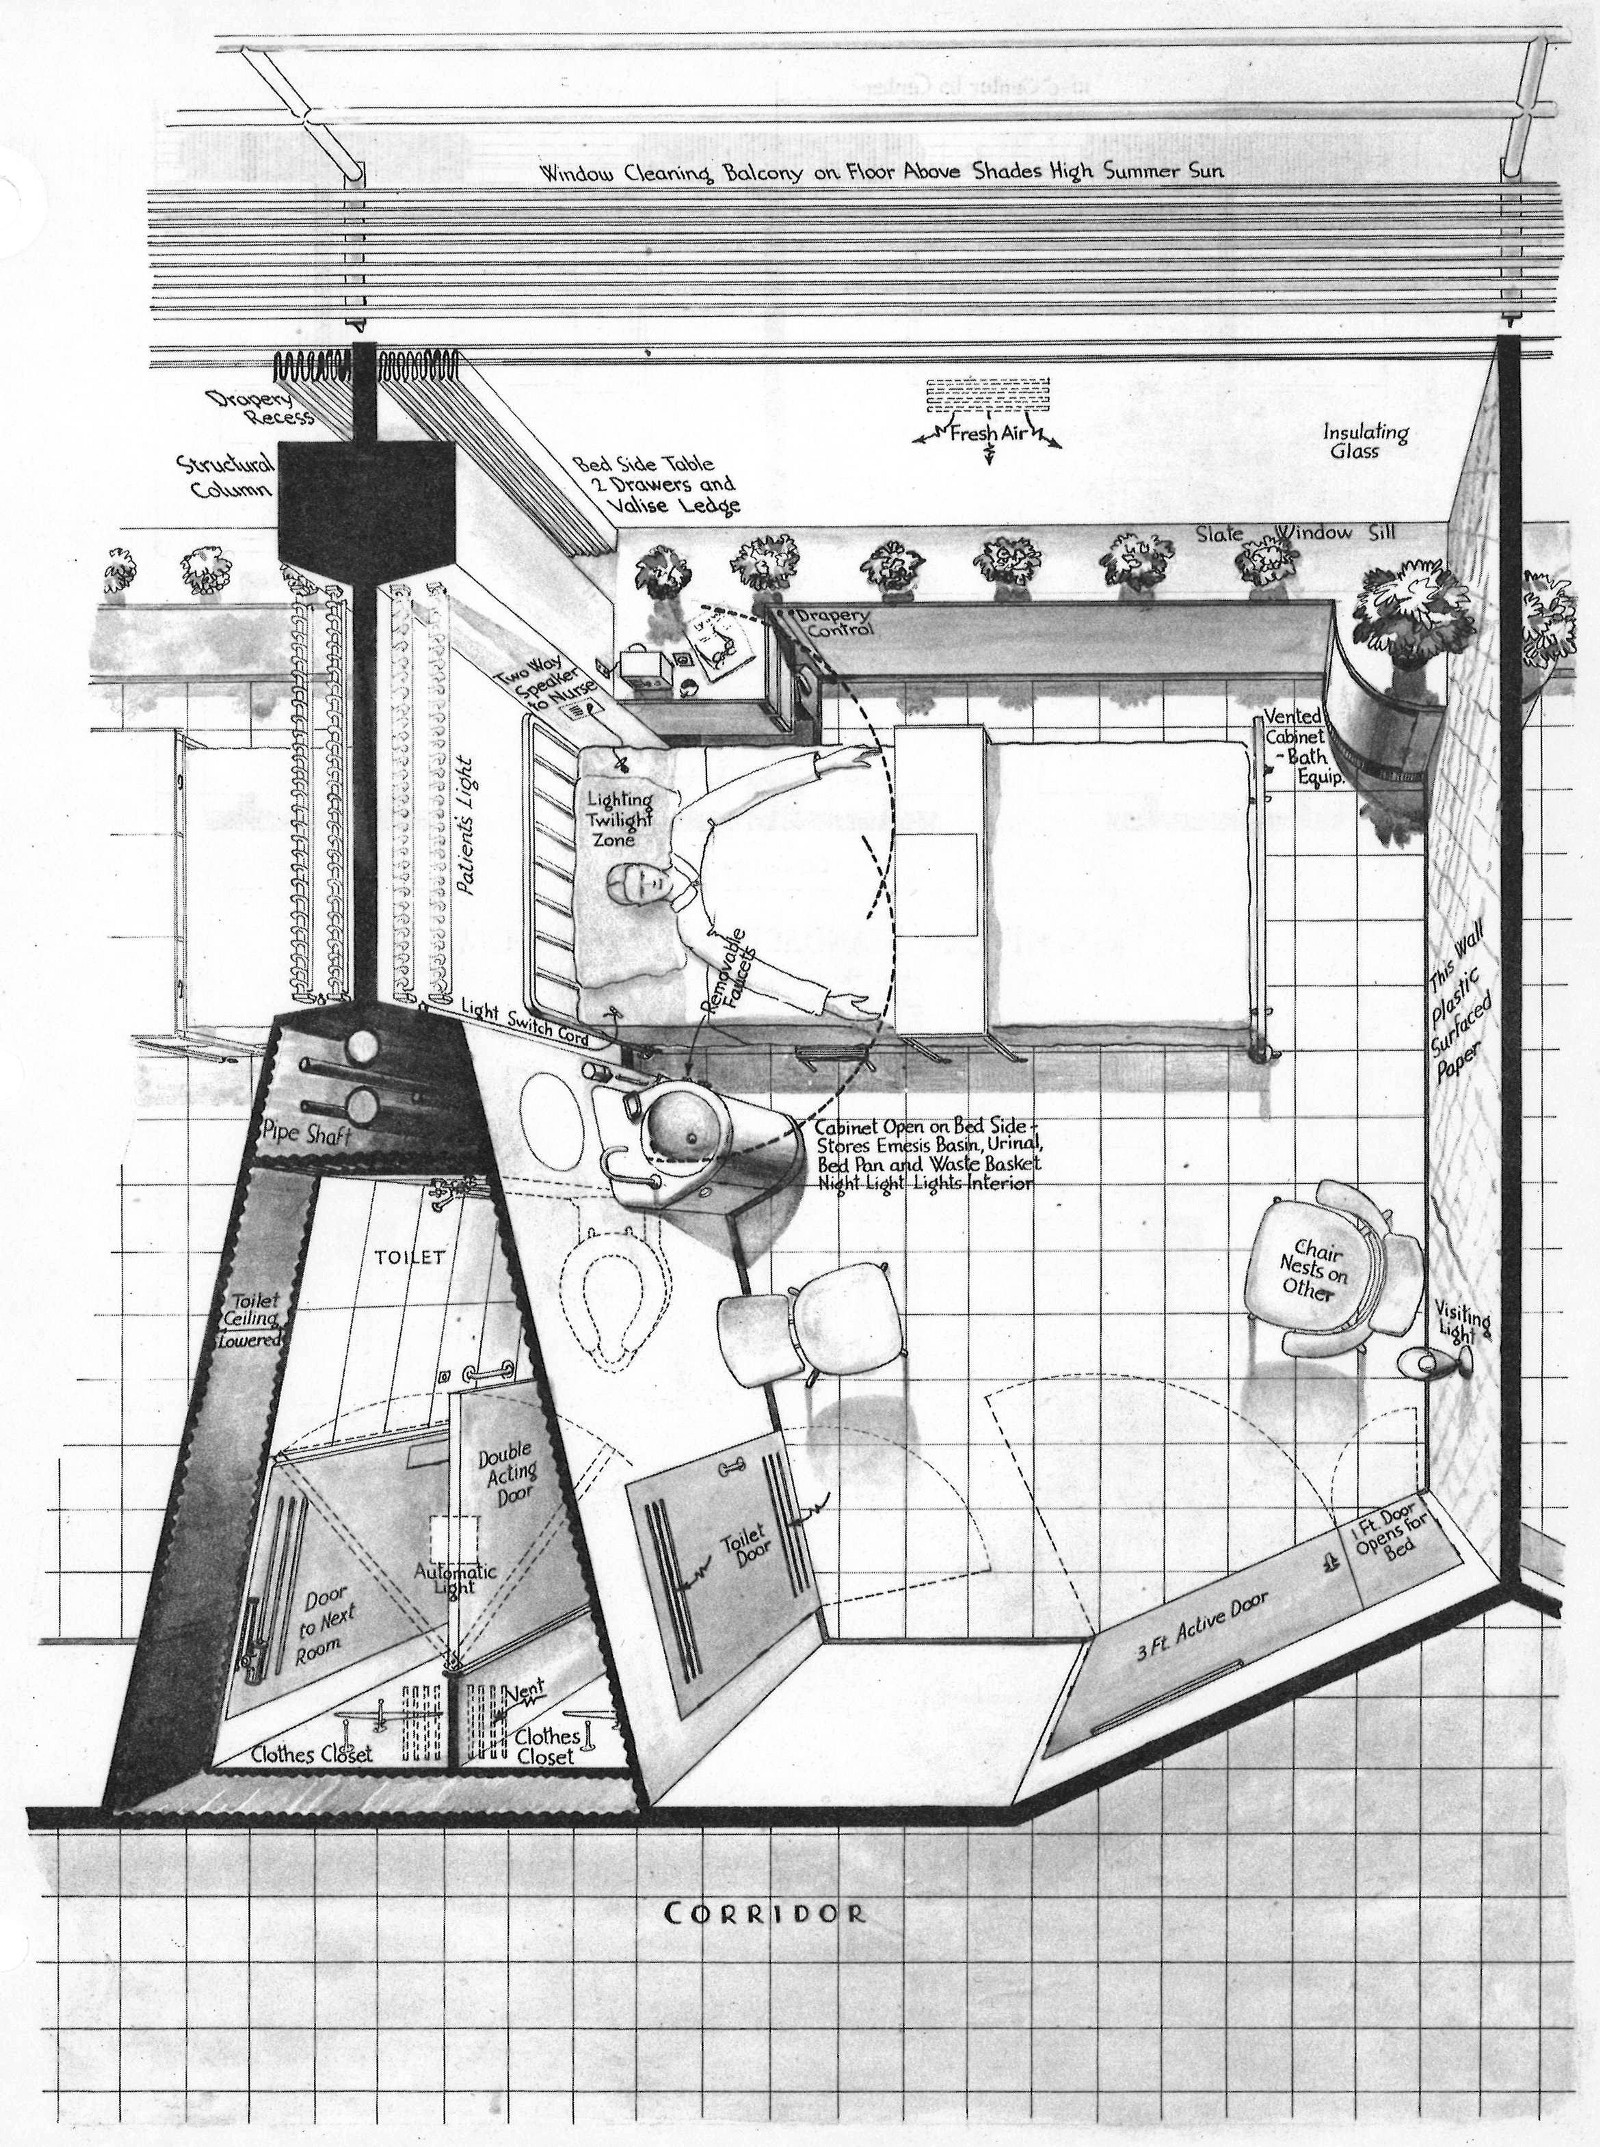 Open Door Drawing Perspective To This Edgetoedge Use Of Glass Within The Patient Room Was An Innovative If Not Radical Concept For Exterior Wall At Time Certainly Us Antecedents u201cminimal Patient Roomu201d u2013 Mark Careaga Medium